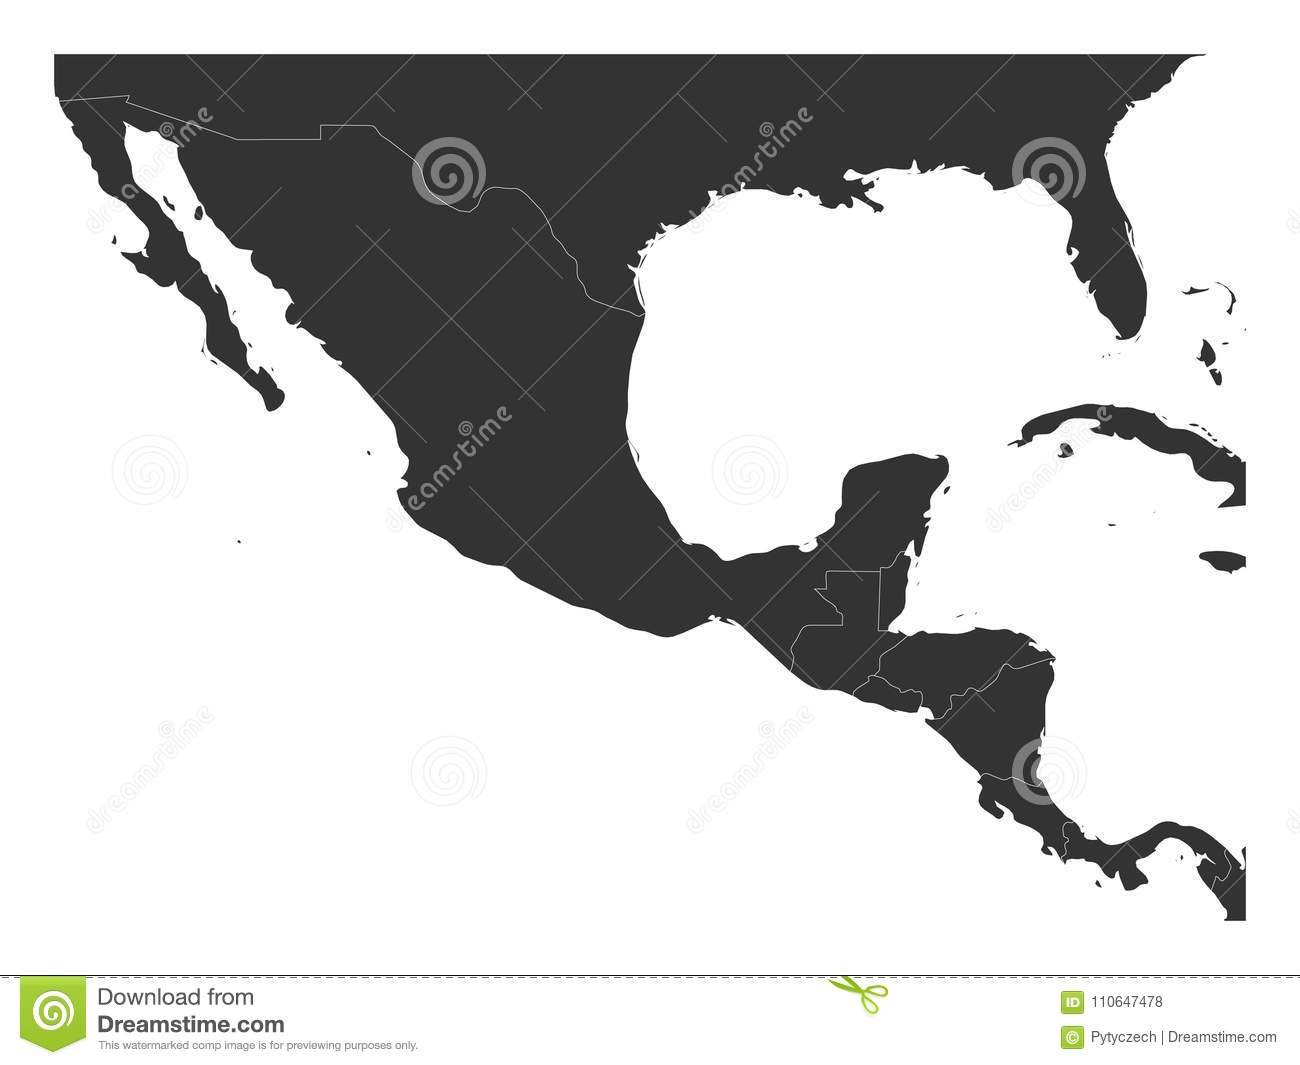 Blank Political Map Of Central America And Mexico Simple